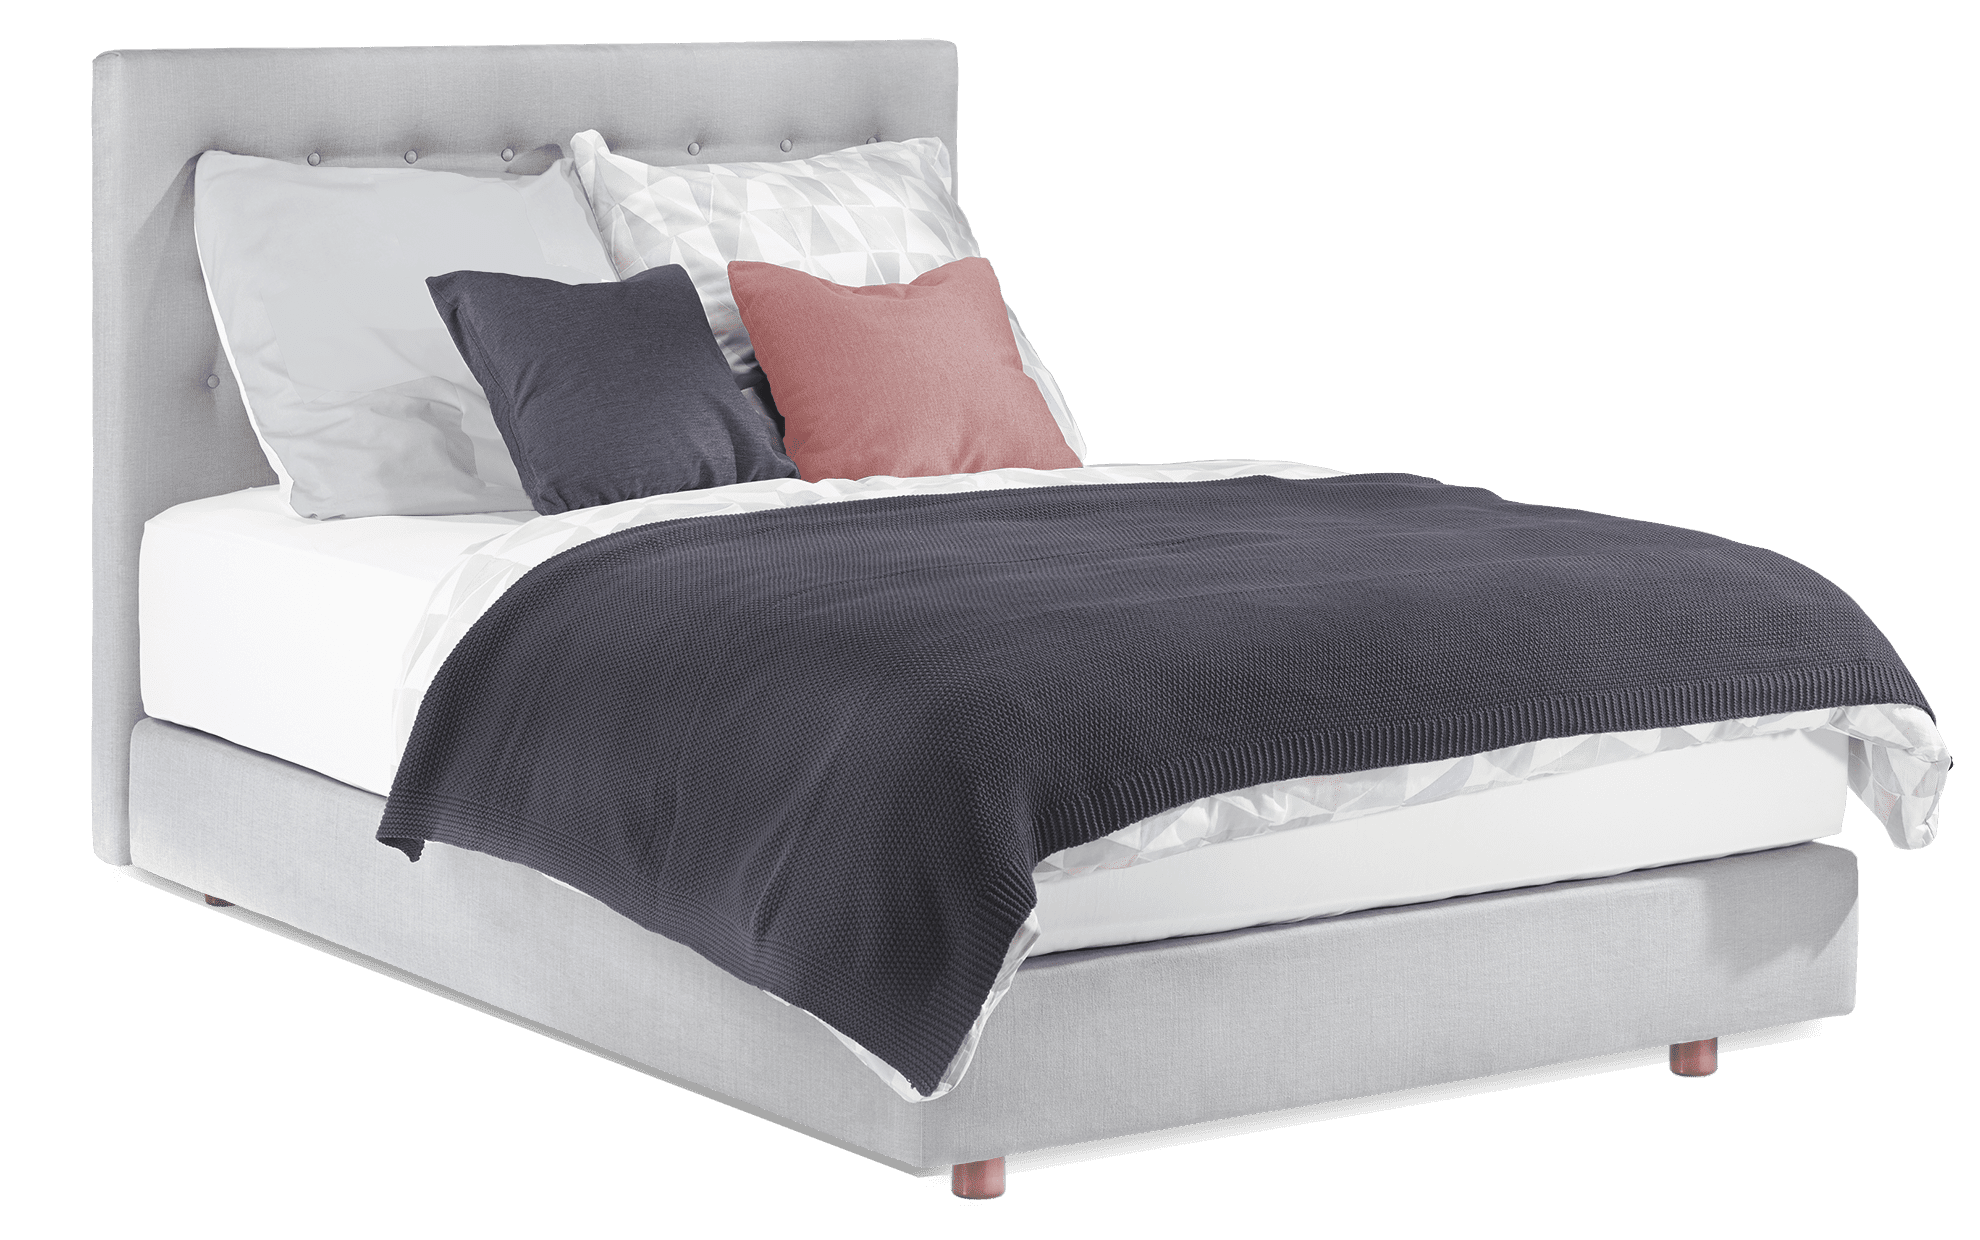 Sleep&Dream Boxspringbetten